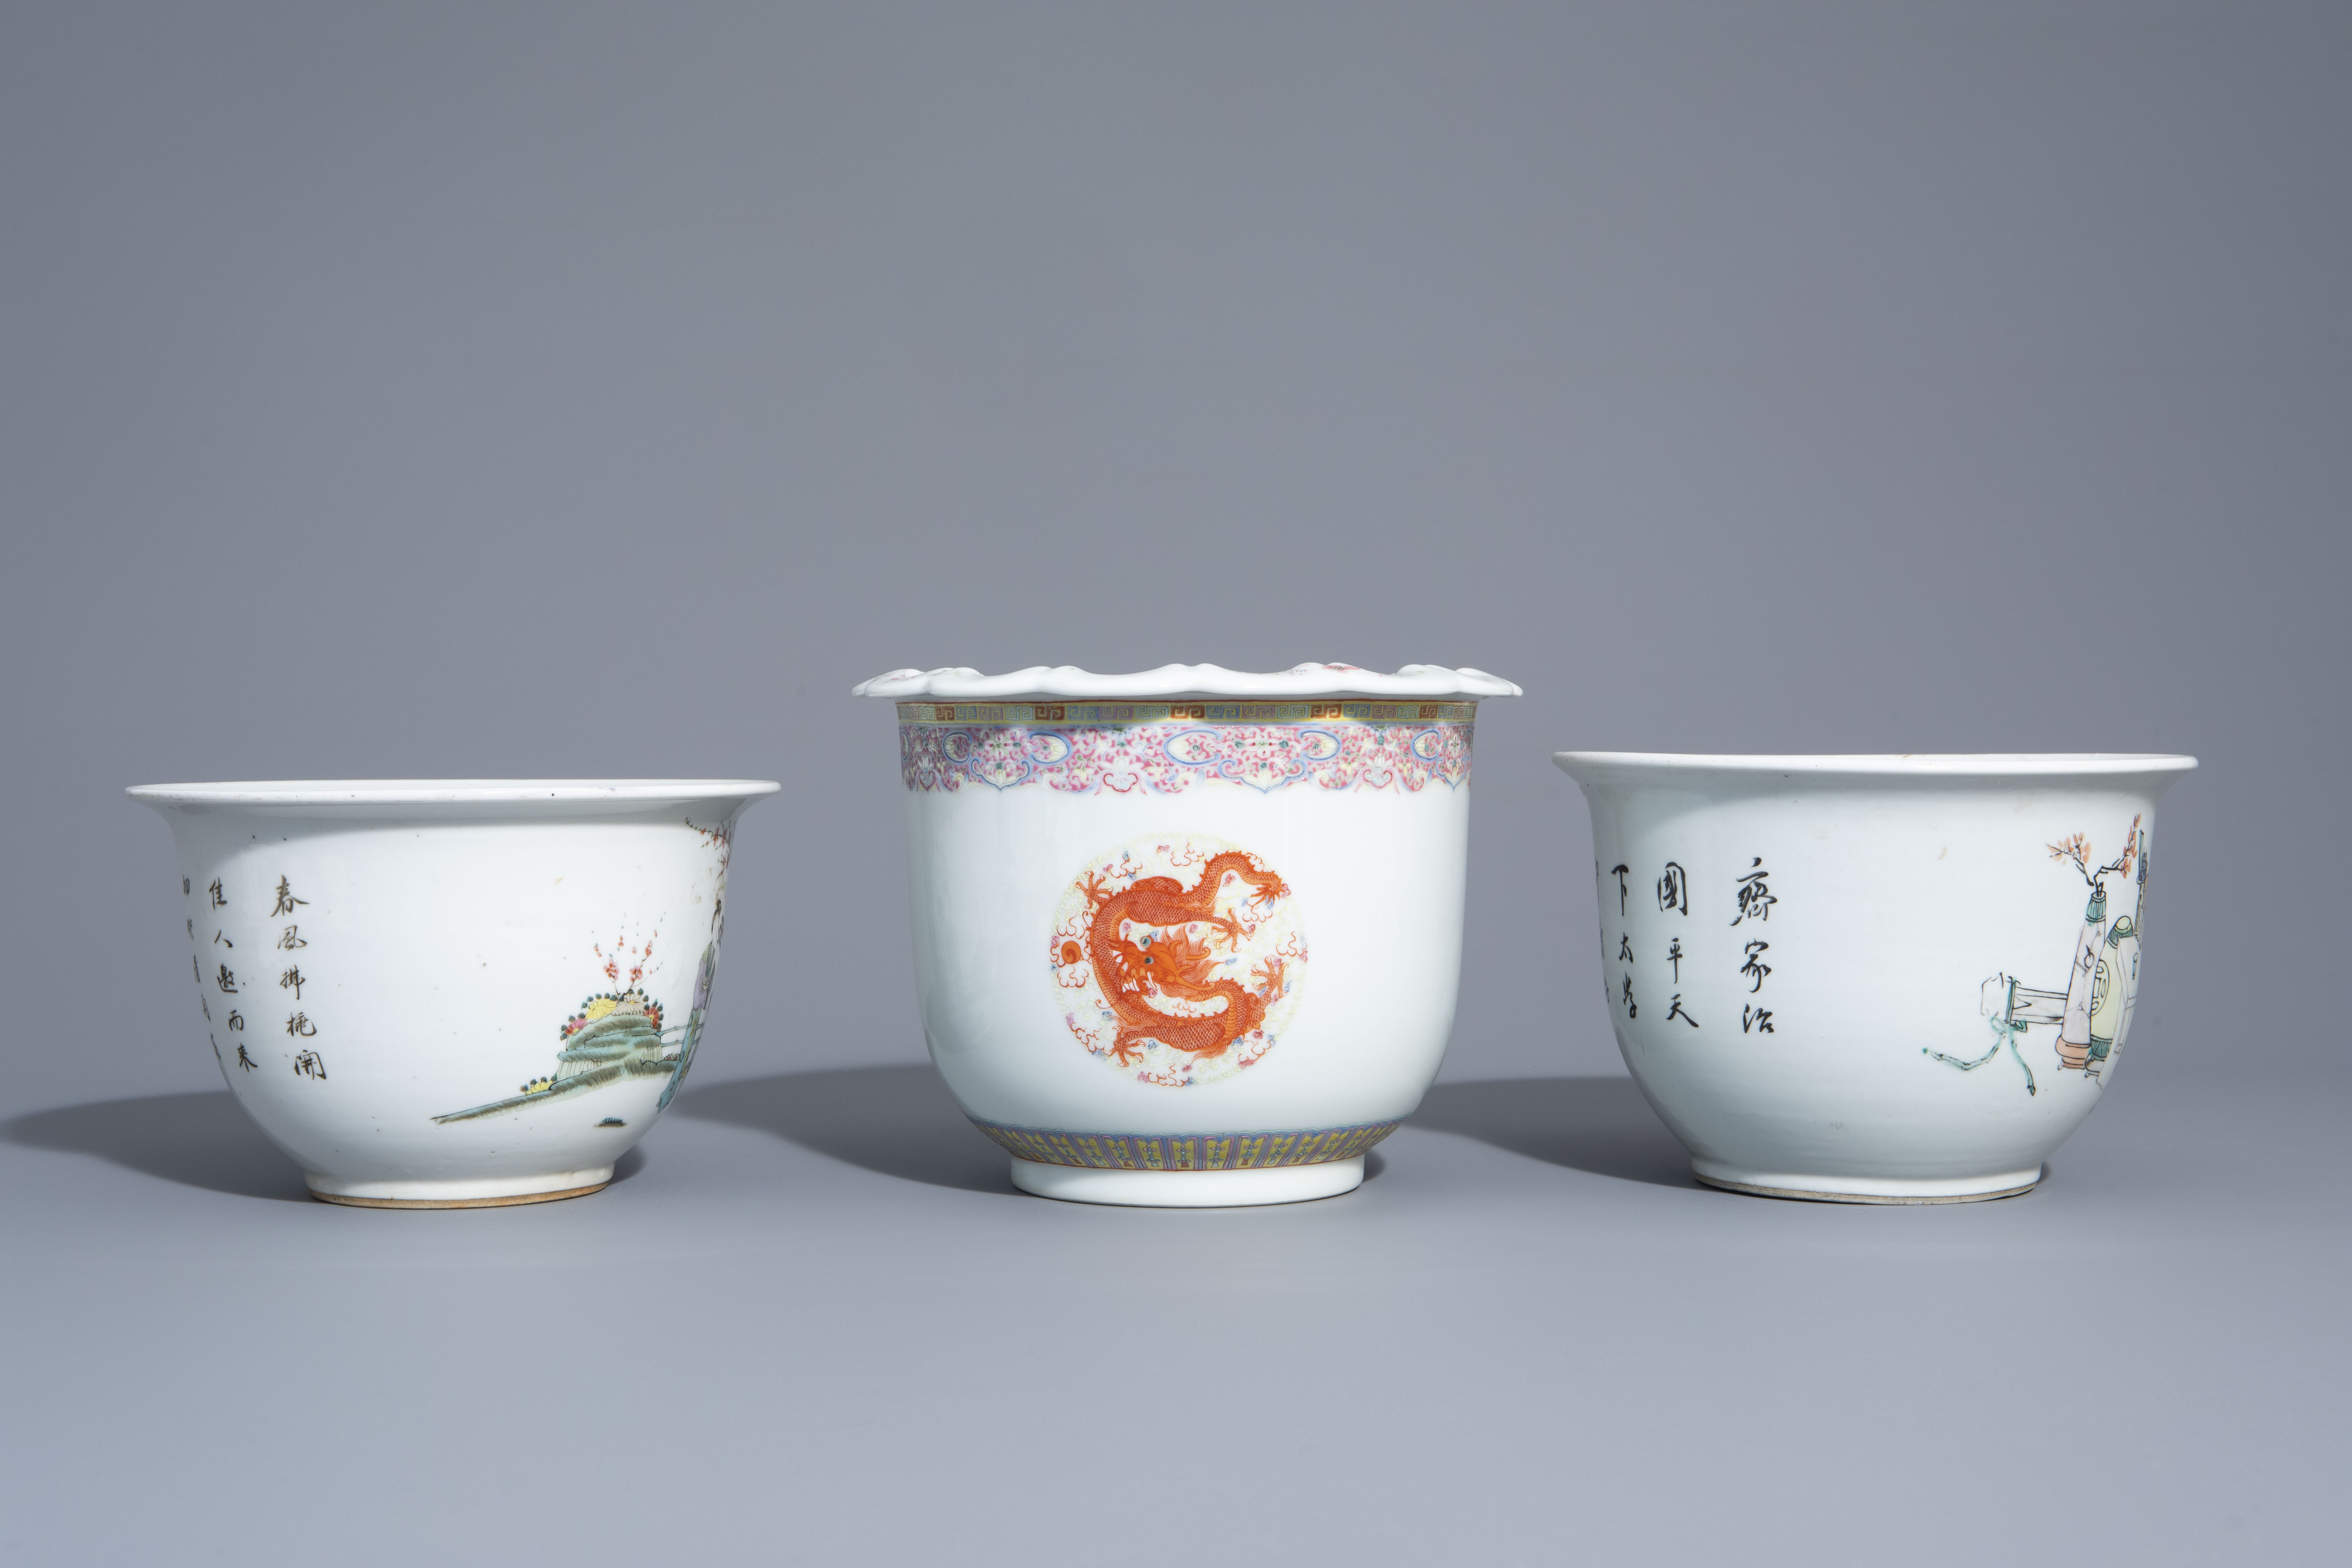 Three Chinese famille rose and qianjiang cai jardinires with different designs, 19th/20th C. - Image 3 of 7